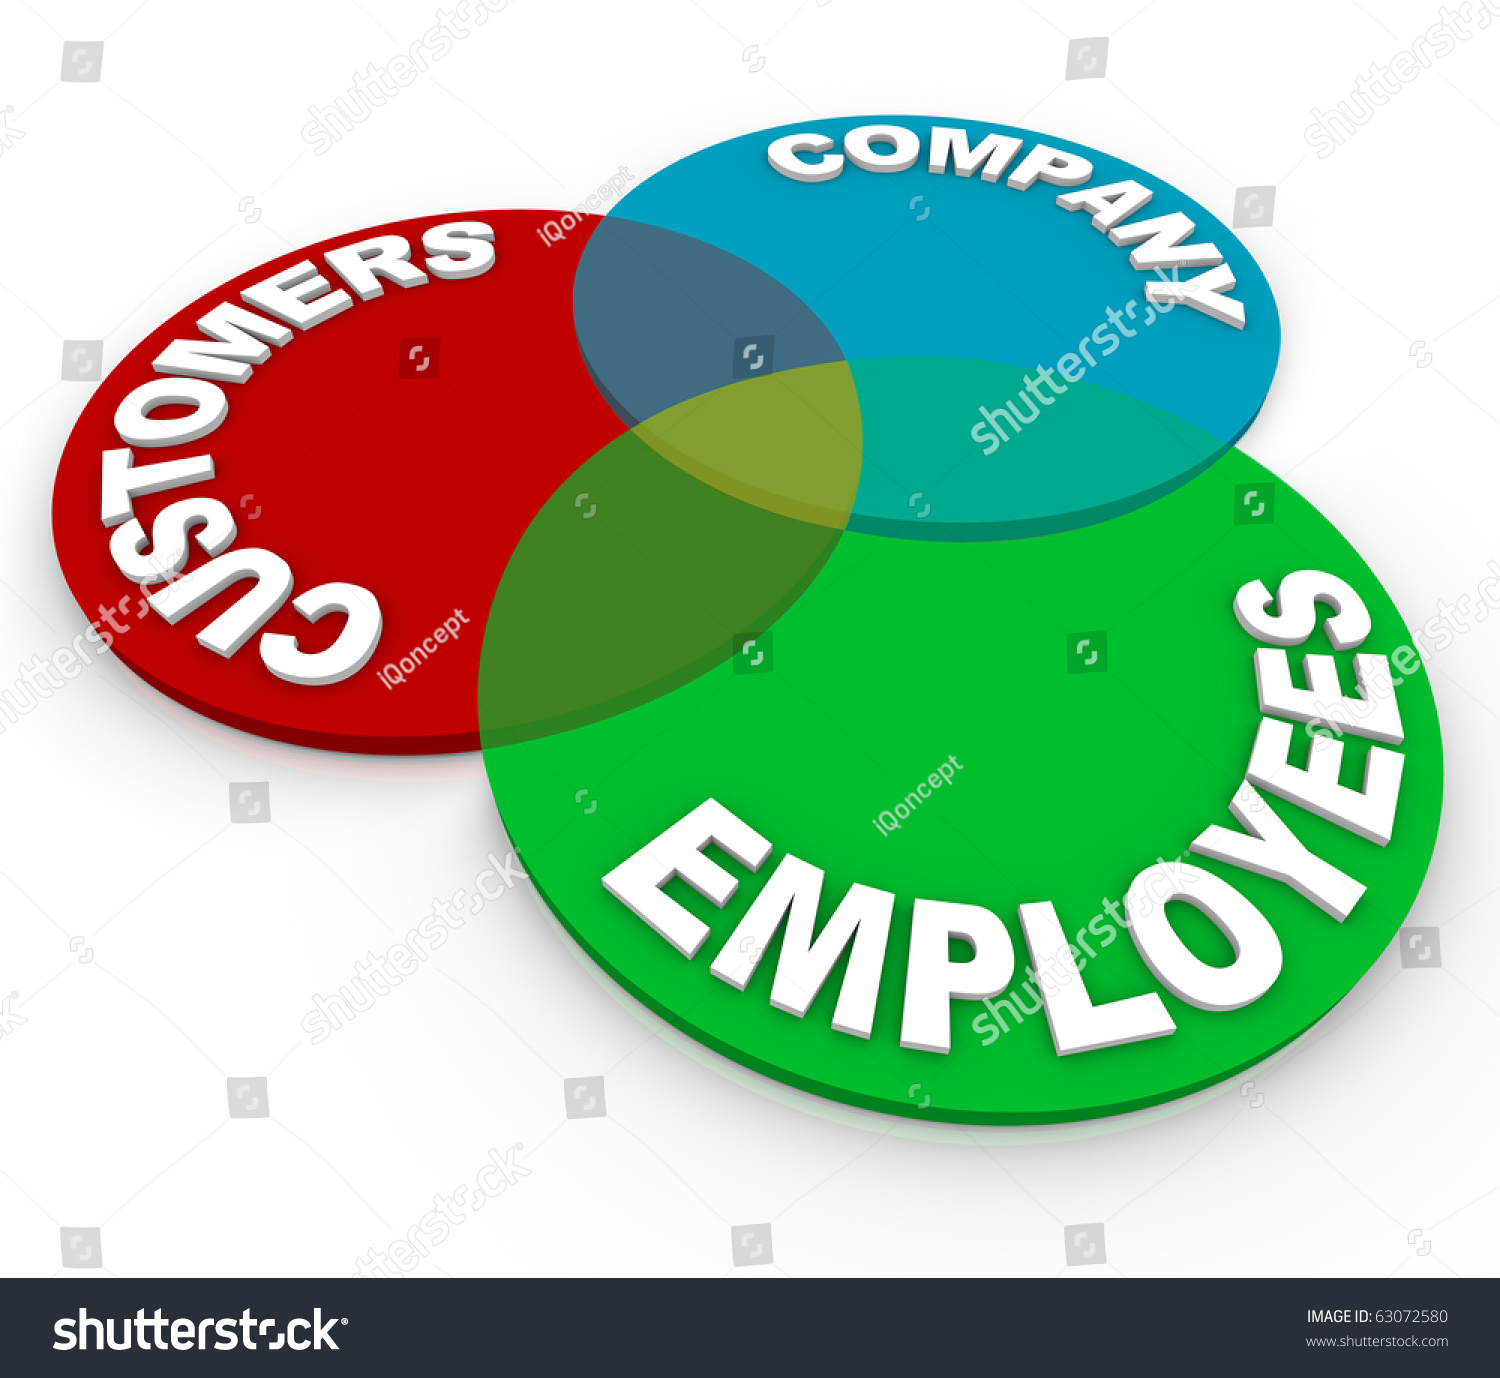 Customer service venn diagram three circles stock illustration a customer service venn diagram of three circles marked customers company and employees pooptronica Images